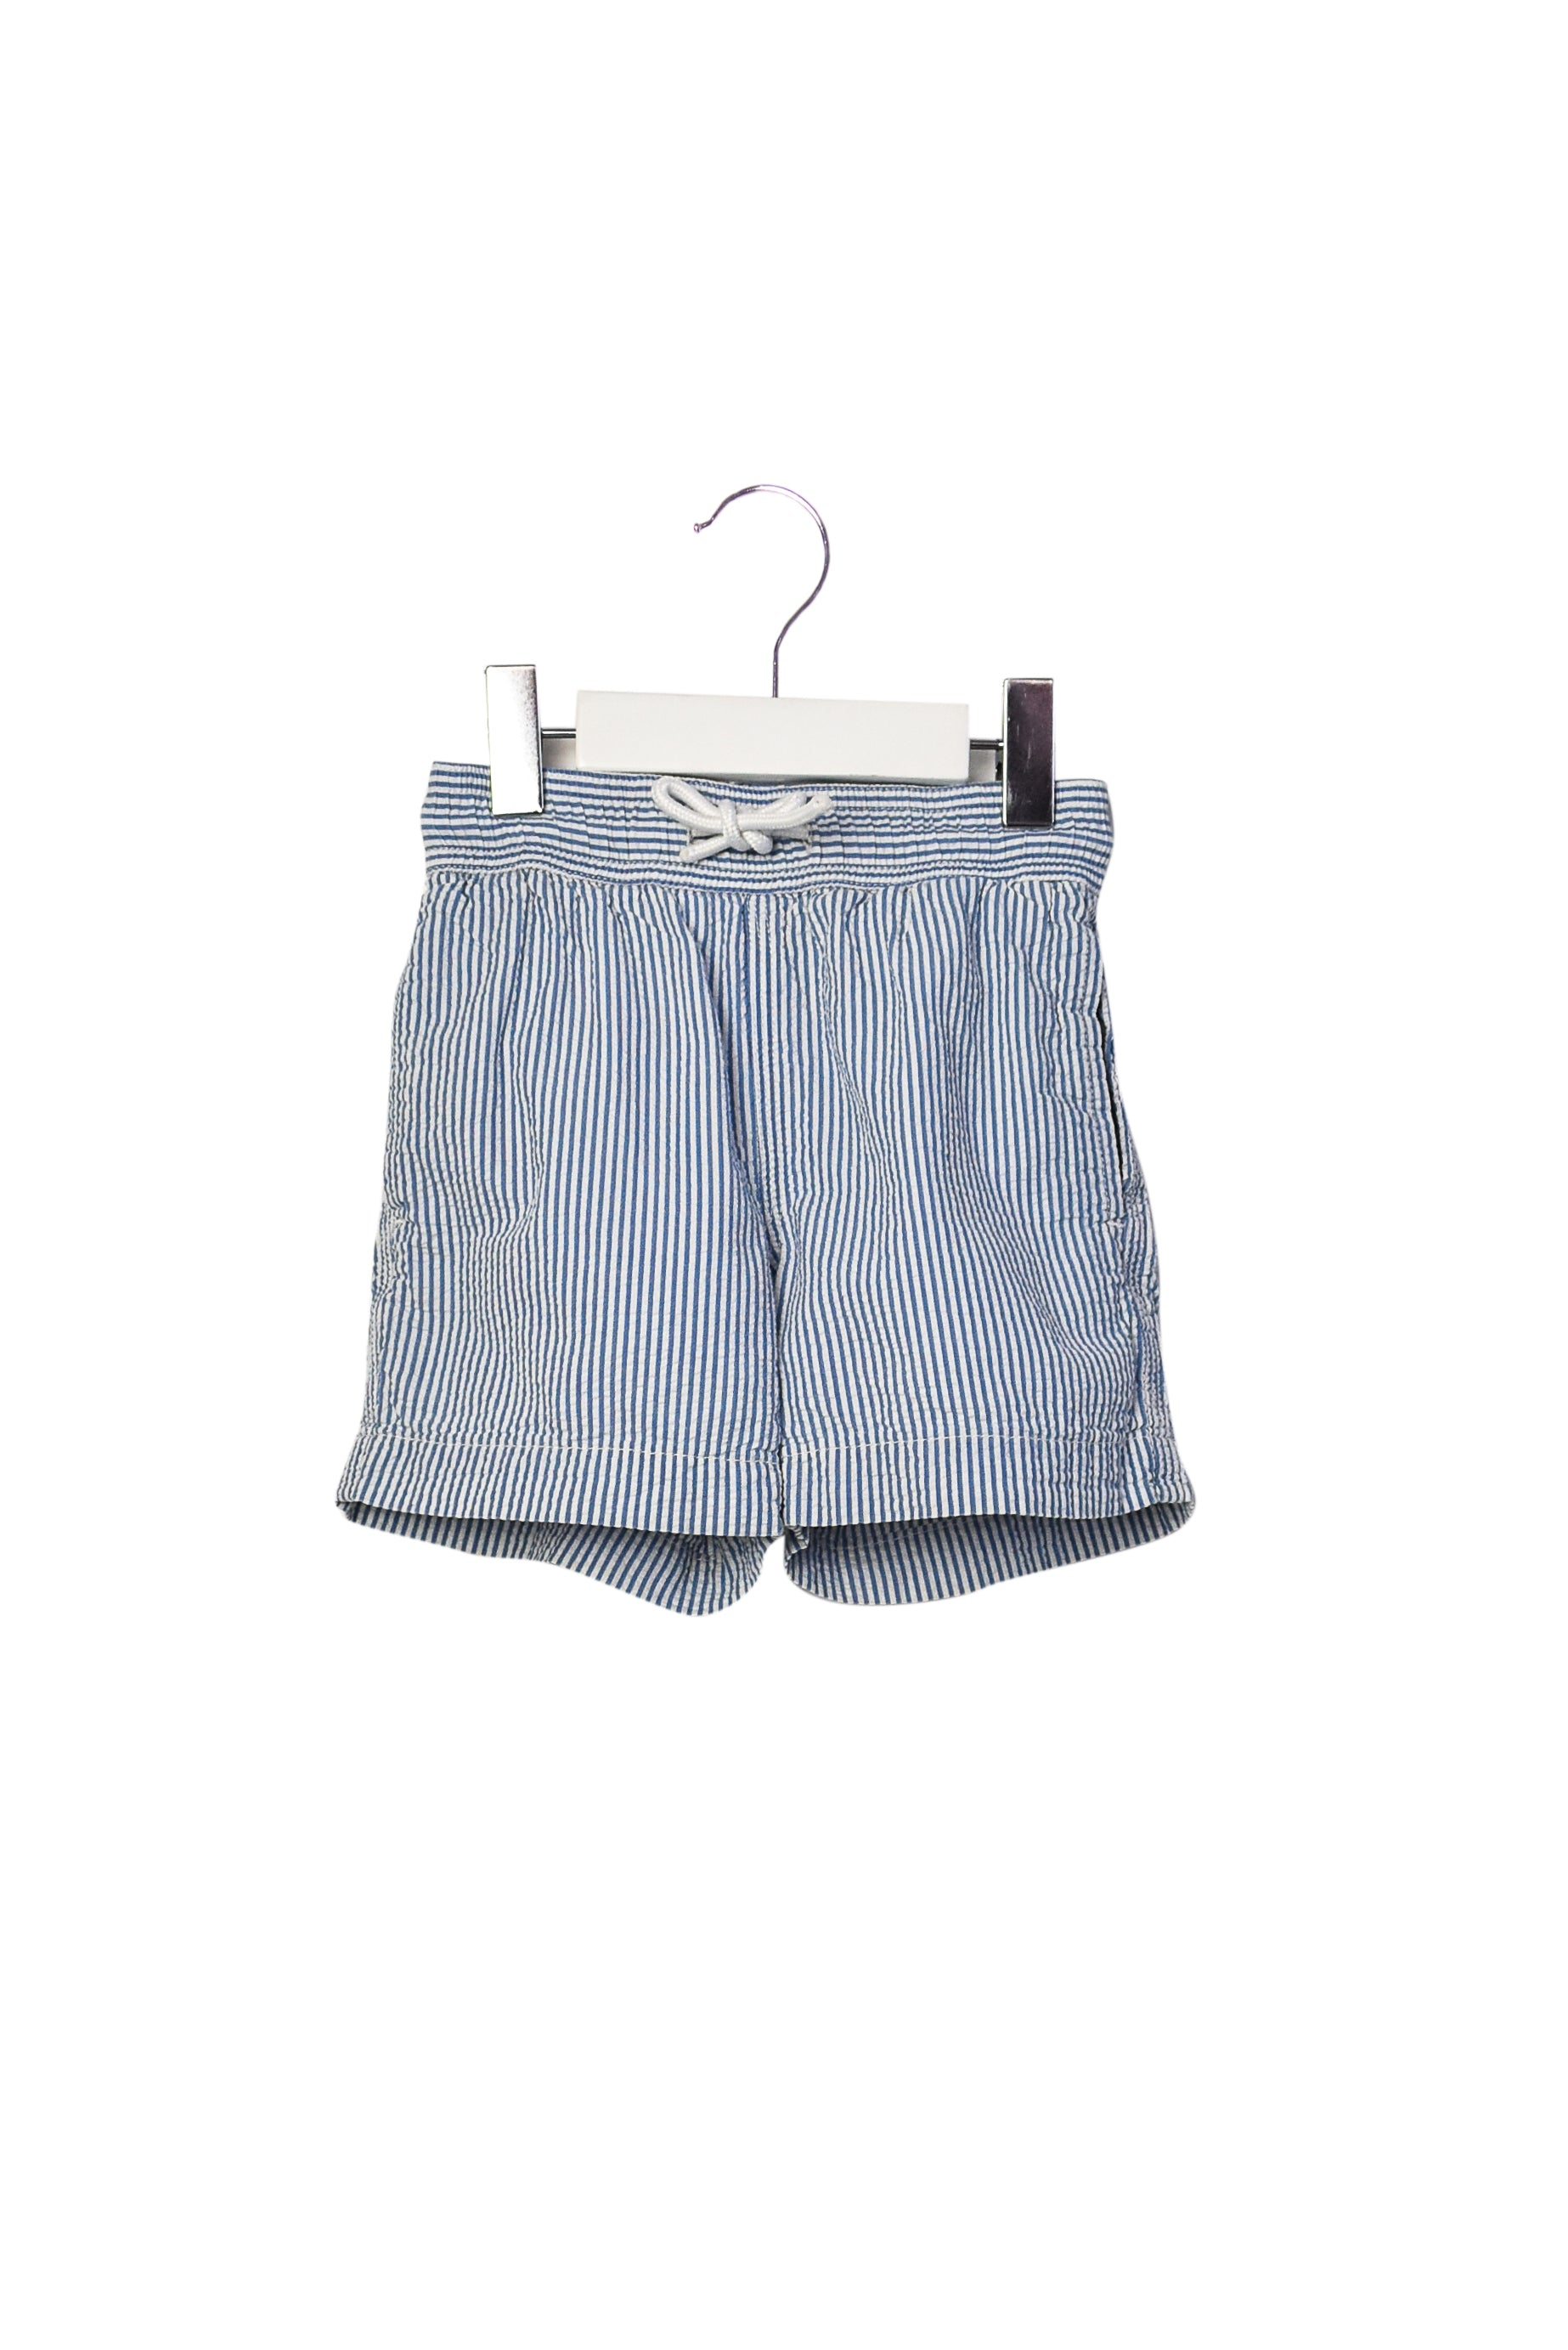 10006912 Crewcuts Kids~ Shorts 2T at Retykle